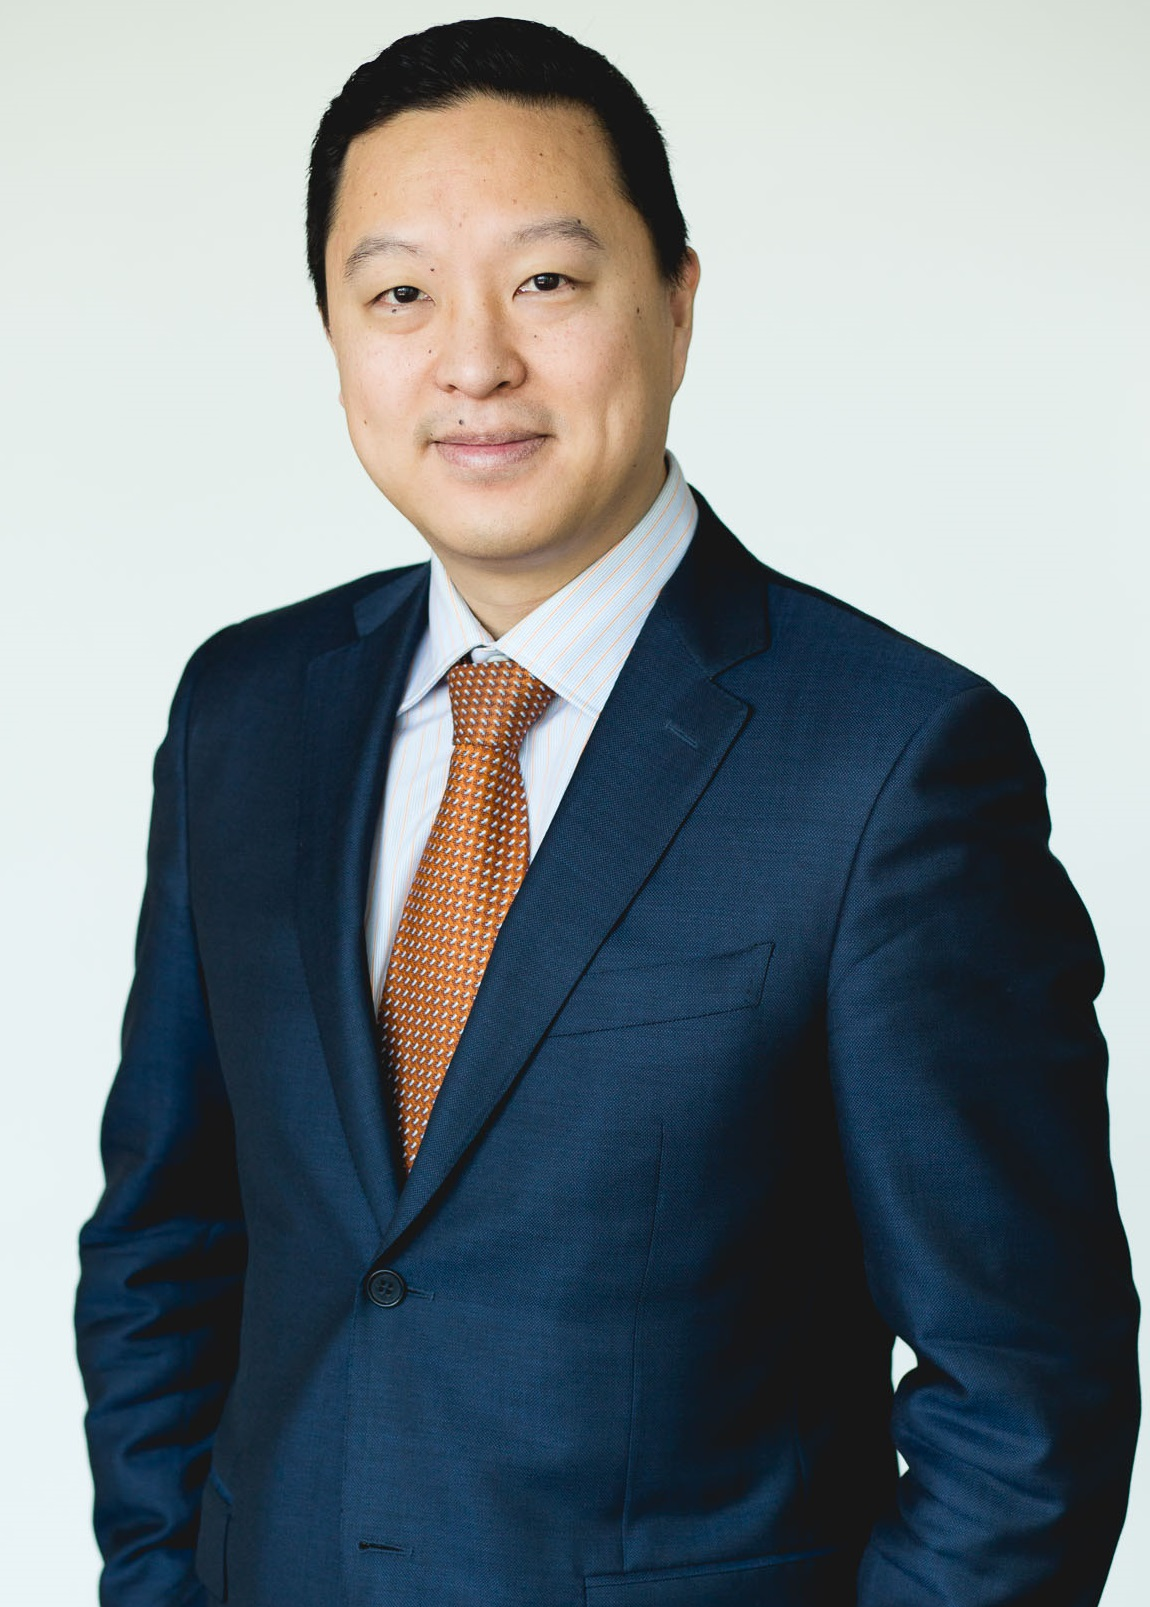 Gene Kim, President, Financial Security Advisor - Summit Private Wealth Inc.<br>Branch Owner, Portfolio Manager, Private Wealth Manager - Mandeville Private Client Inc.